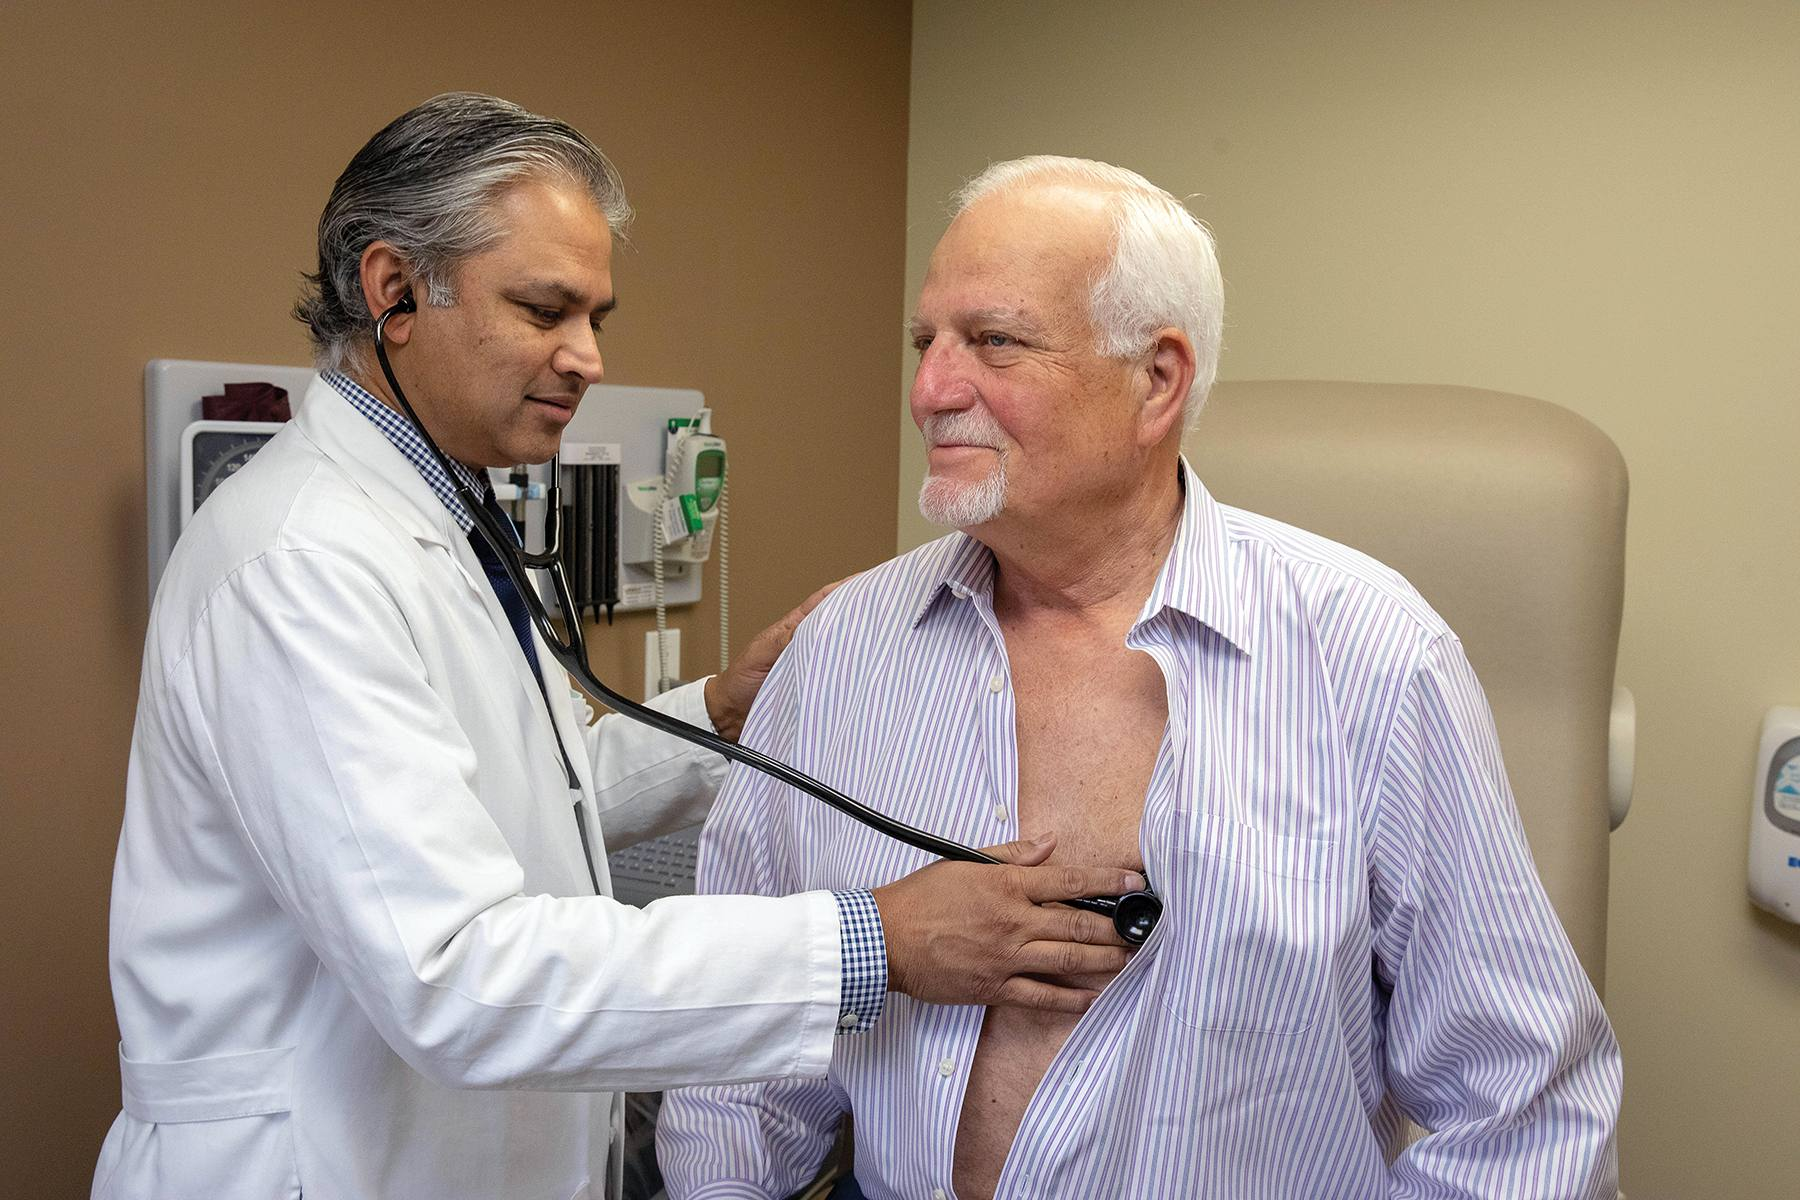 Hospitalist care provided relief to complex patient